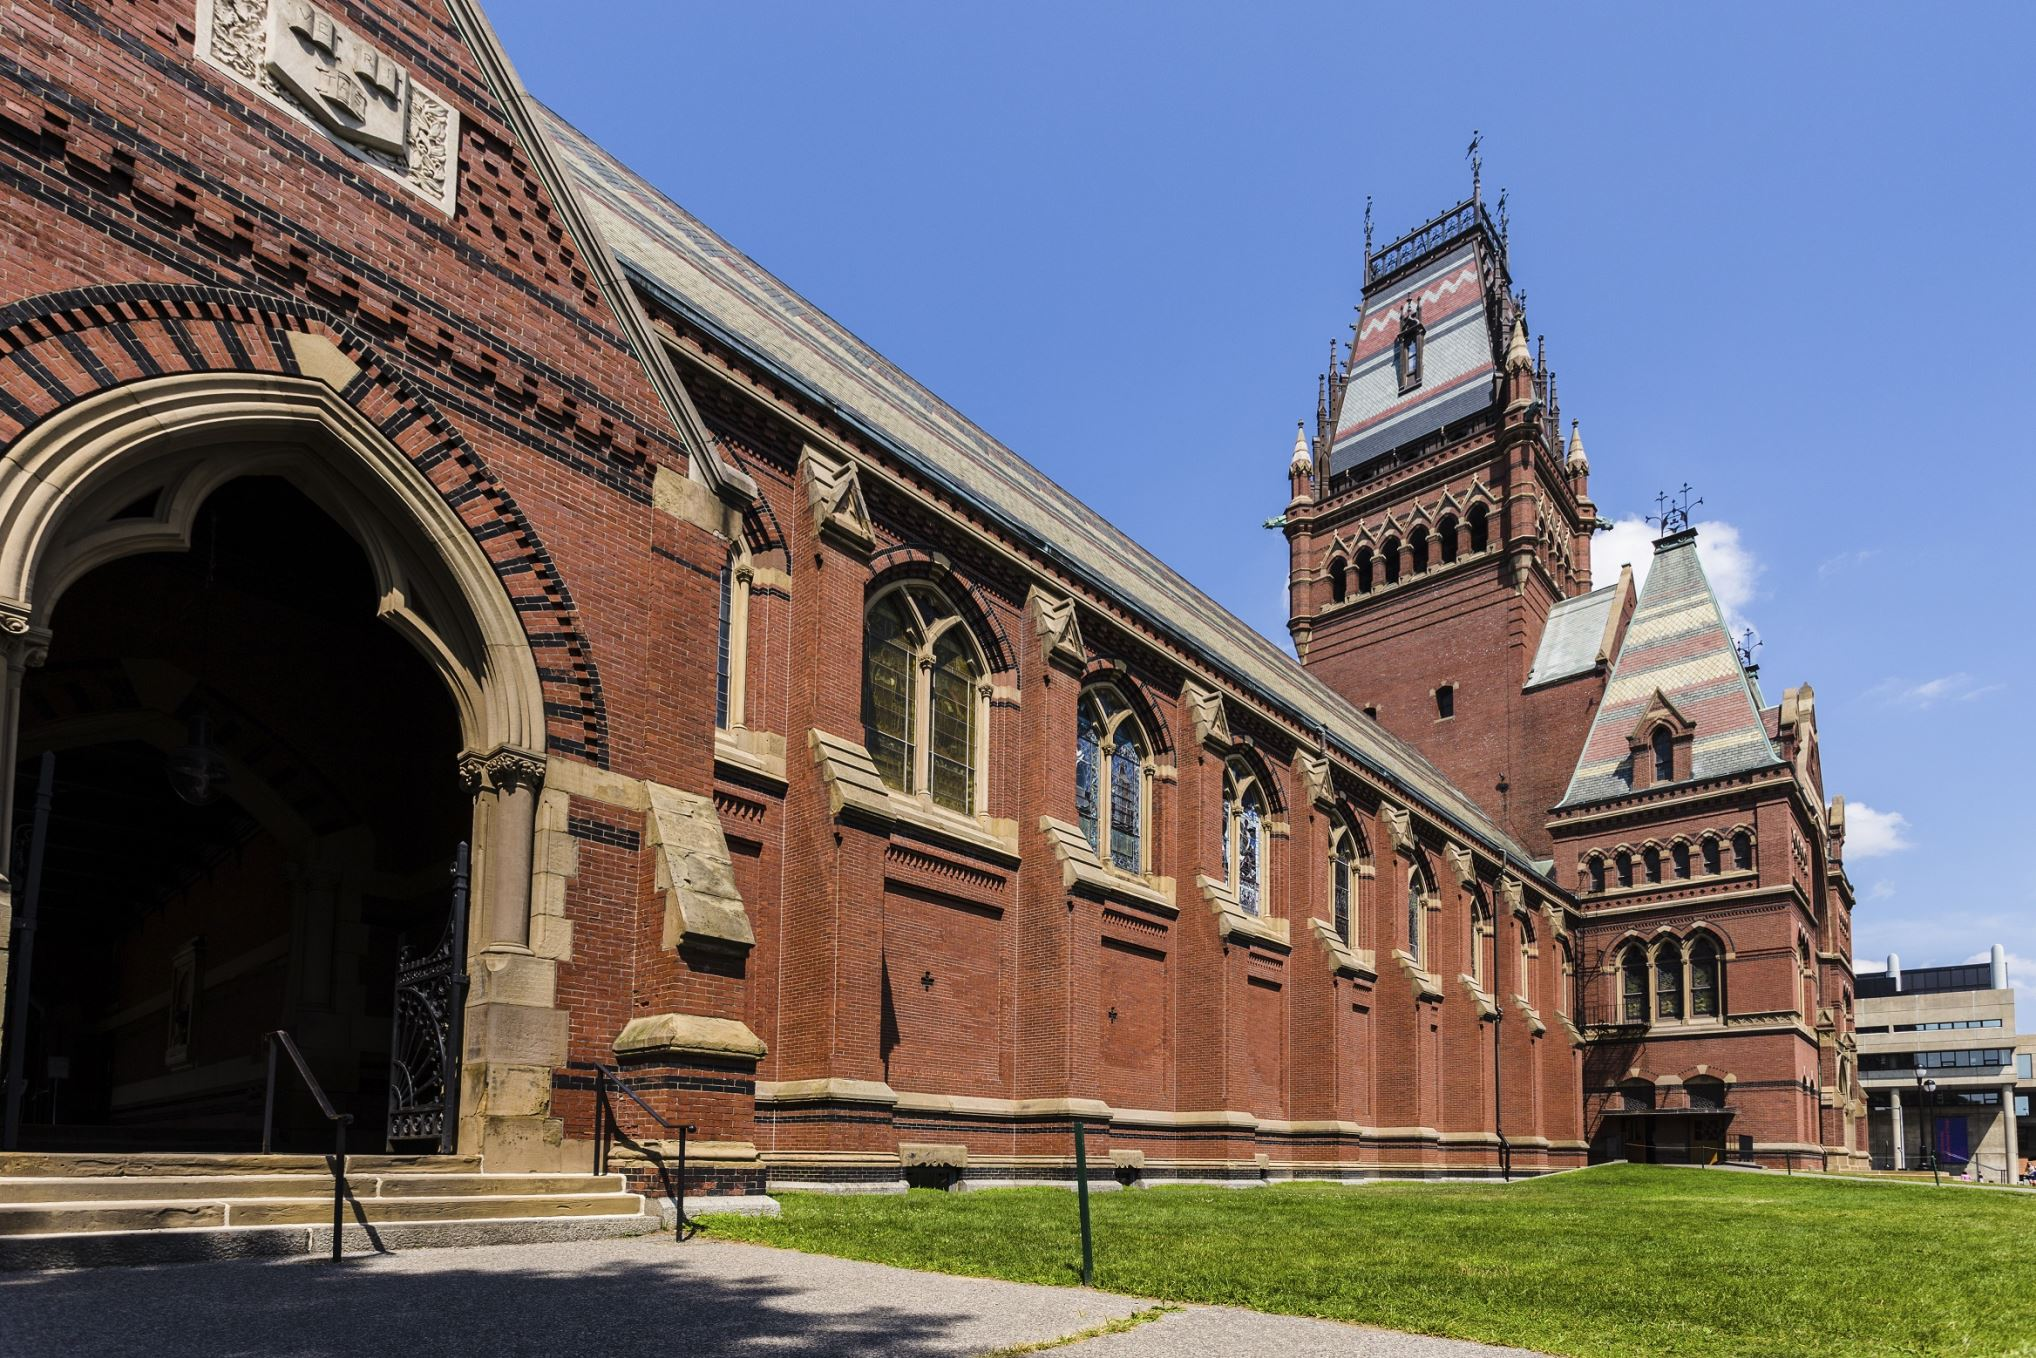 Διαφάνεια 38 από 41: Ranked at seventh place in America's Top Colleges by Forbes, Harvard is widely regarded as one of the most prestigious universities in the world. It was established in 1636, and has produced 22 billionaire graduates.